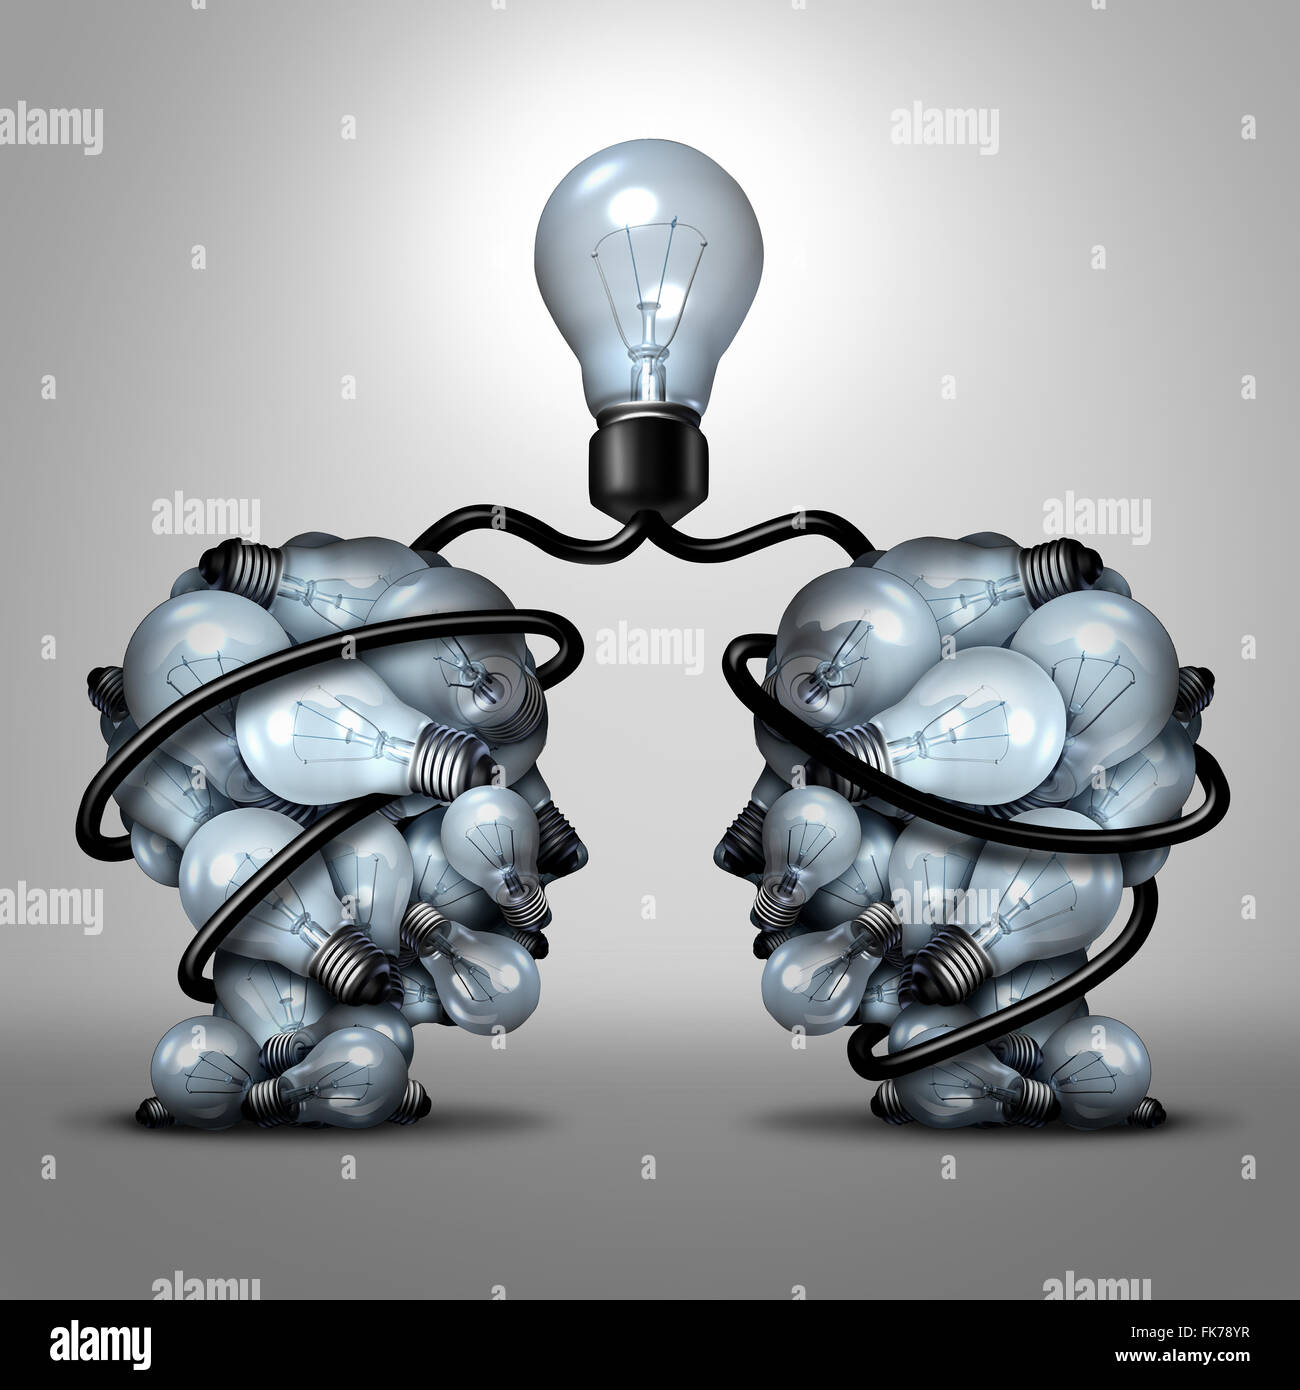 Creative unity partnership light bulb as two groups of lightbulb objects shaped as a human head joining together - Stock Image